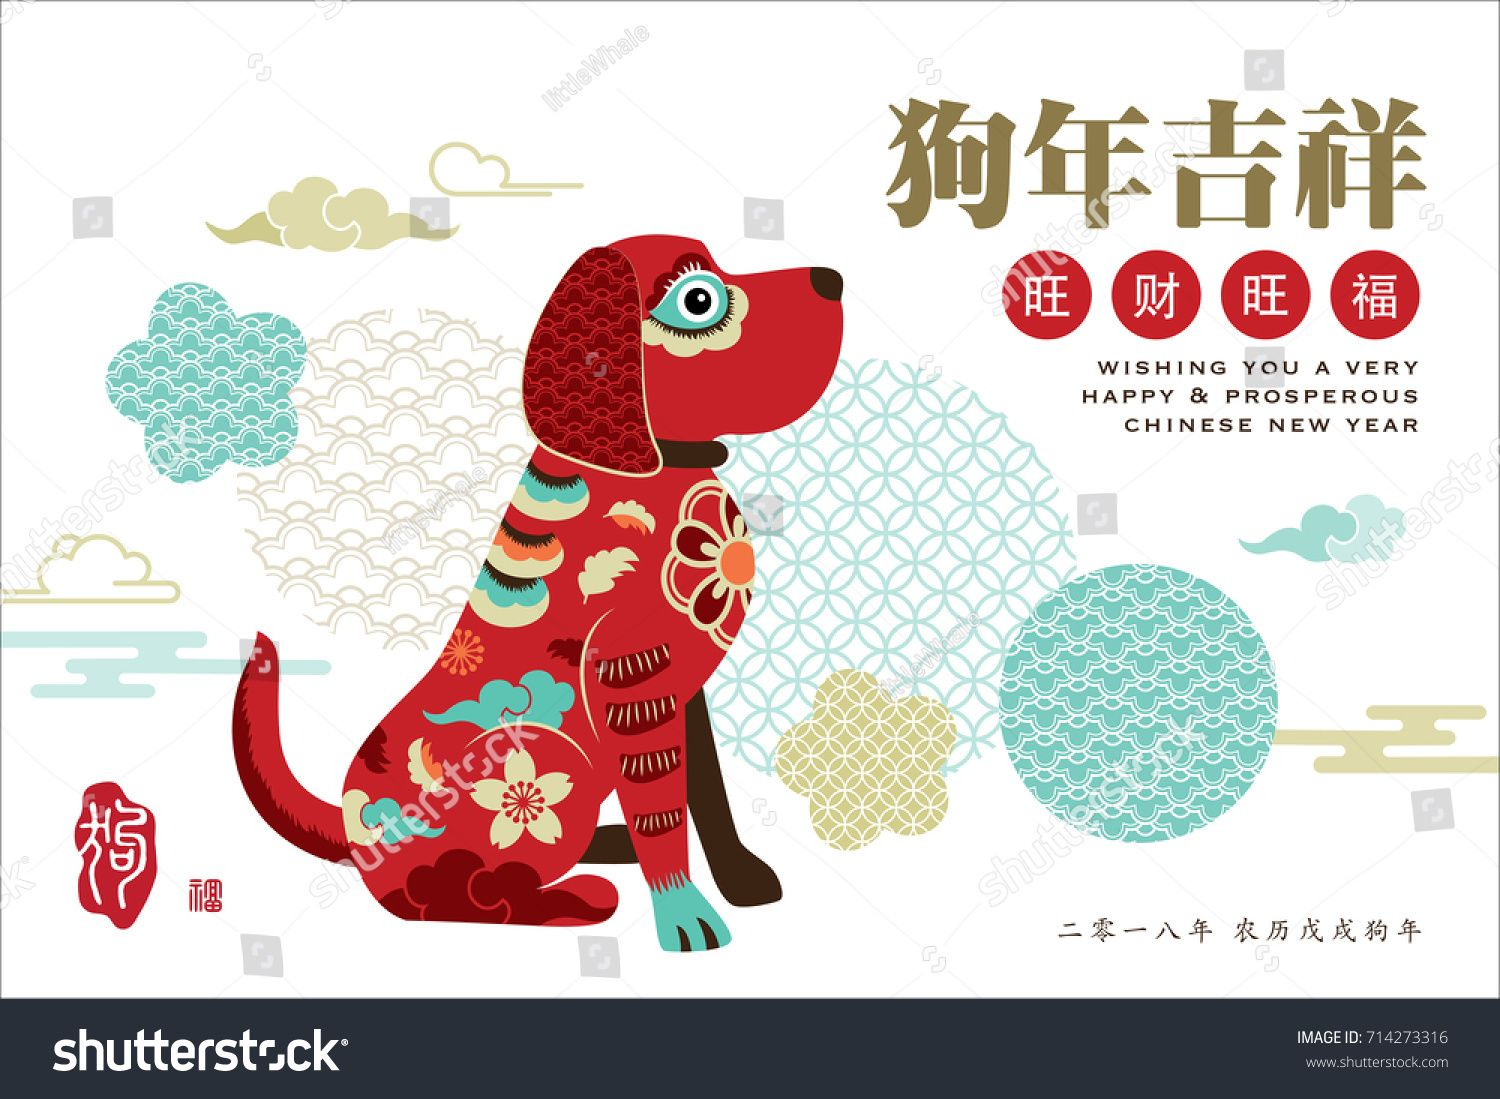 2018 Chinese New Year Greeting Card Chinese Translation Prosperous